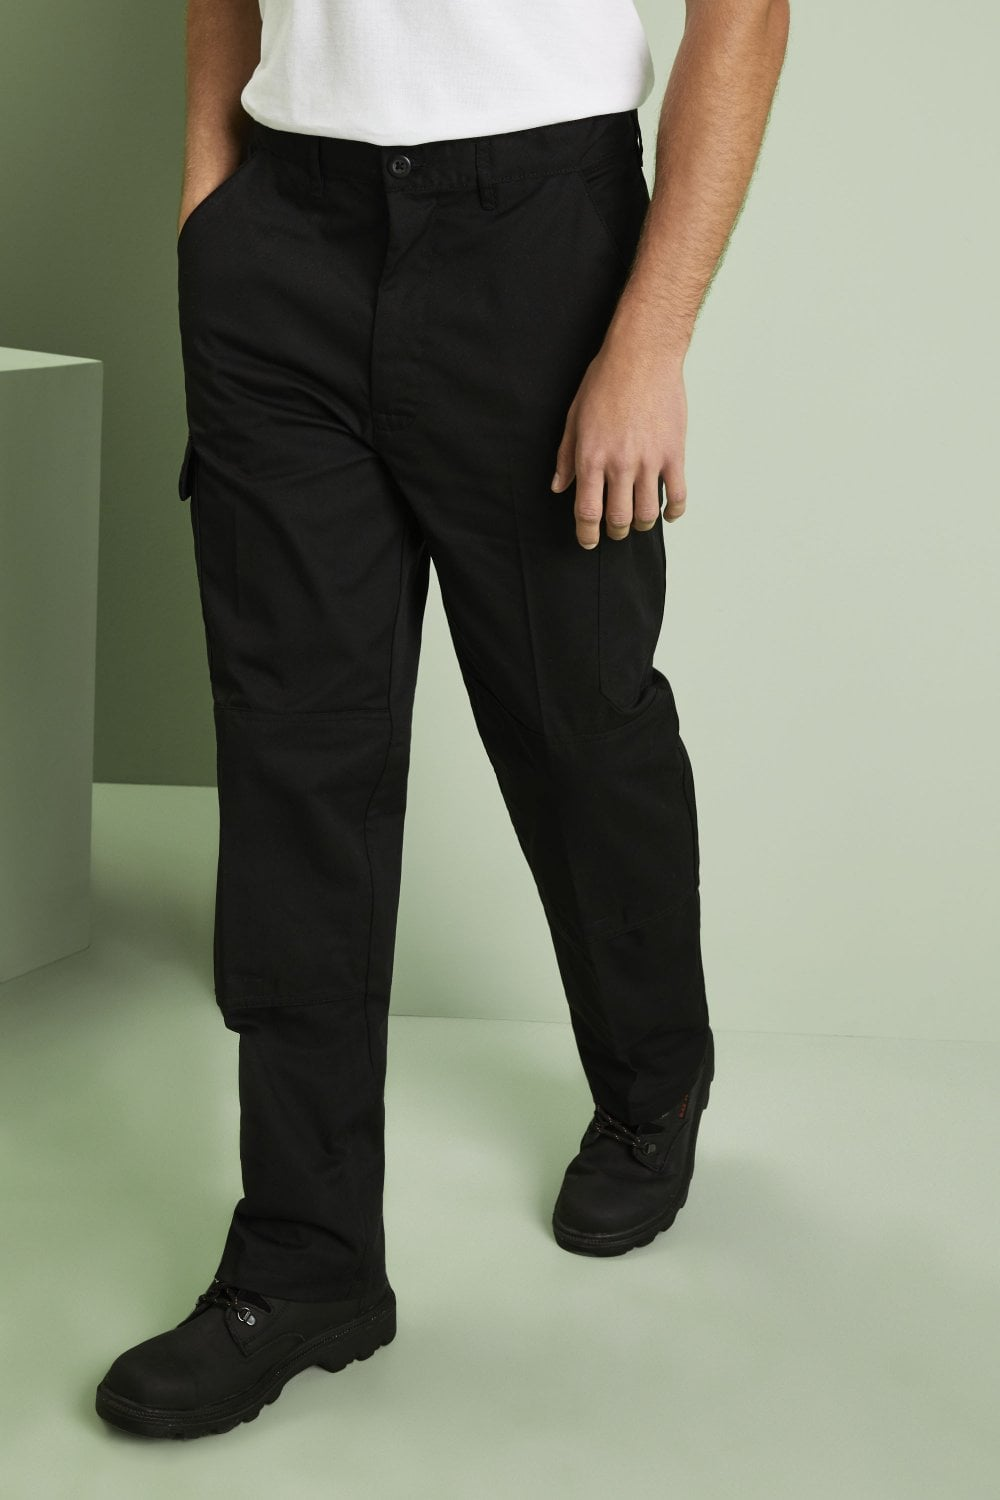 aff2df472e54d1 PRO RTX Classic Cargo Trouser RX600 - SHOP BY PROFESSION from Simon ...